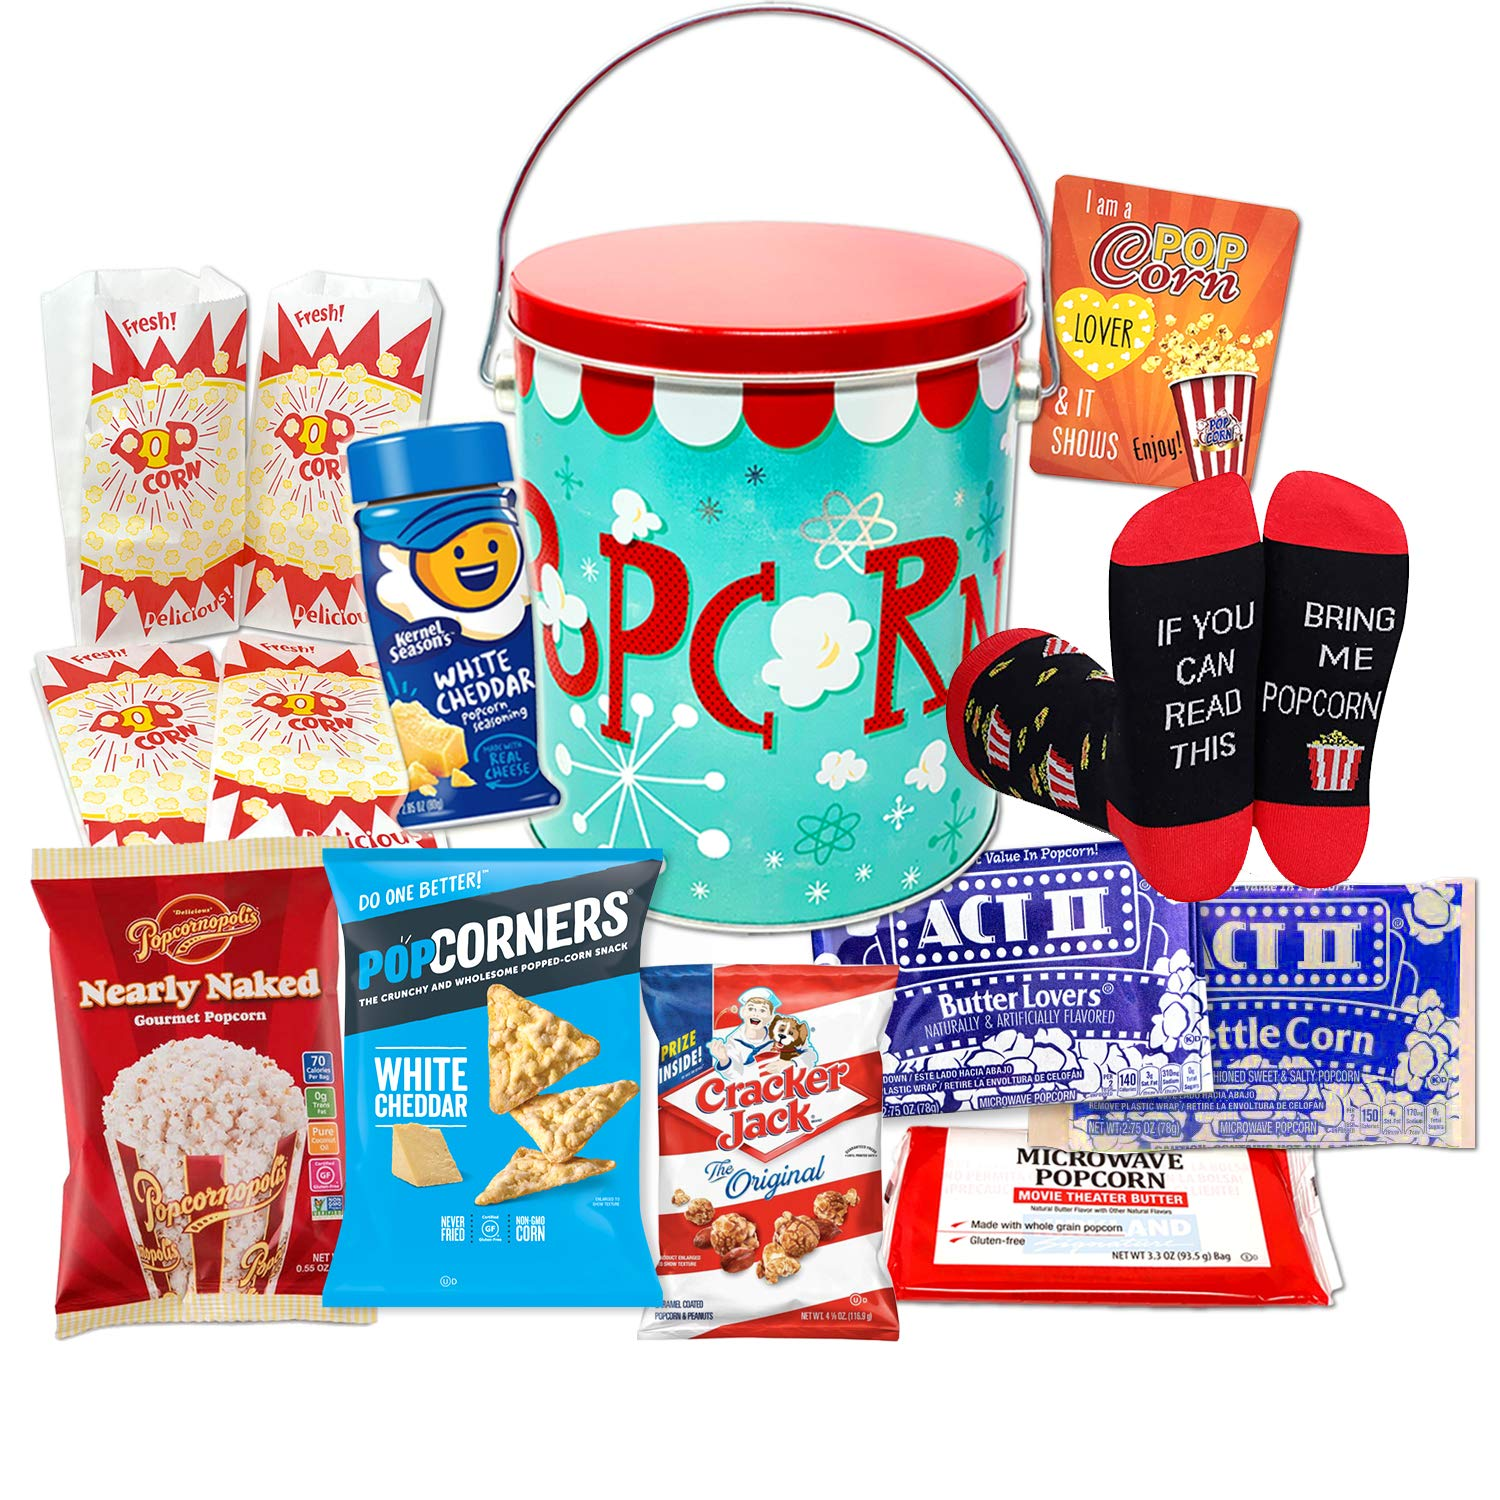 Perfect POPCORN LOVER Movie Night Snacks Gift Basket box | w/ Socks, Tin Popcorn Variety, Microwavable bags, Seasoning | Care Package Birthday for Kids, Family, College, Valentine's, quarantine gift